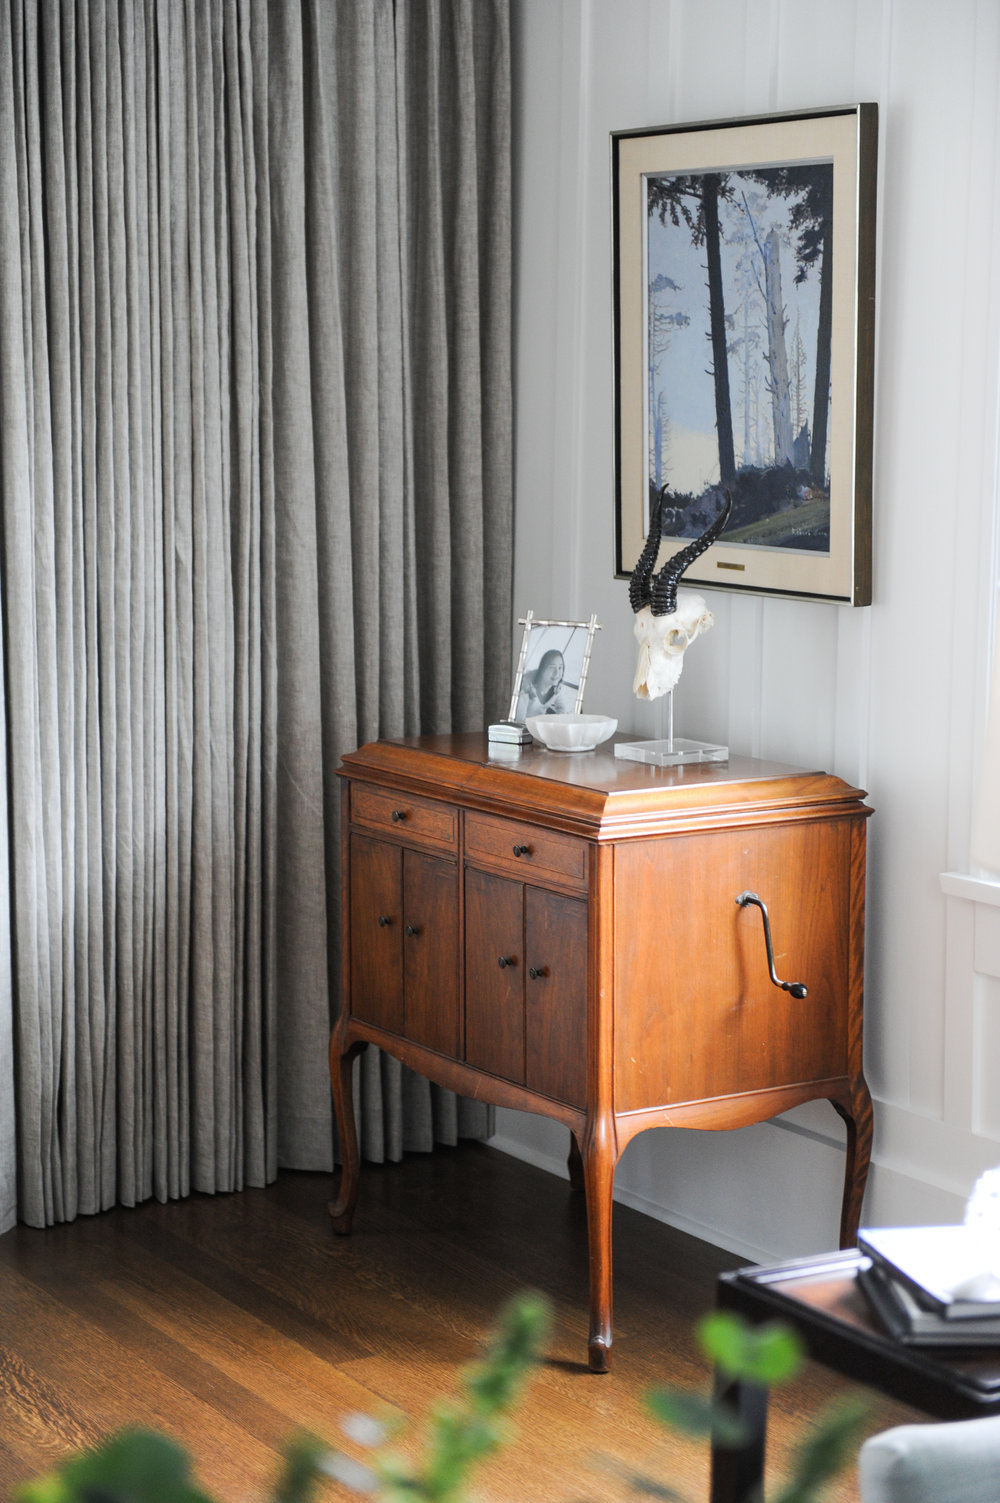 An antique crank phonograph converted into a cabinet sits in the corner of a living room. There is a frame of a family member, a ceramic bowl and an animal skull positioned on top. Hanging above it is a framed painting of trees.